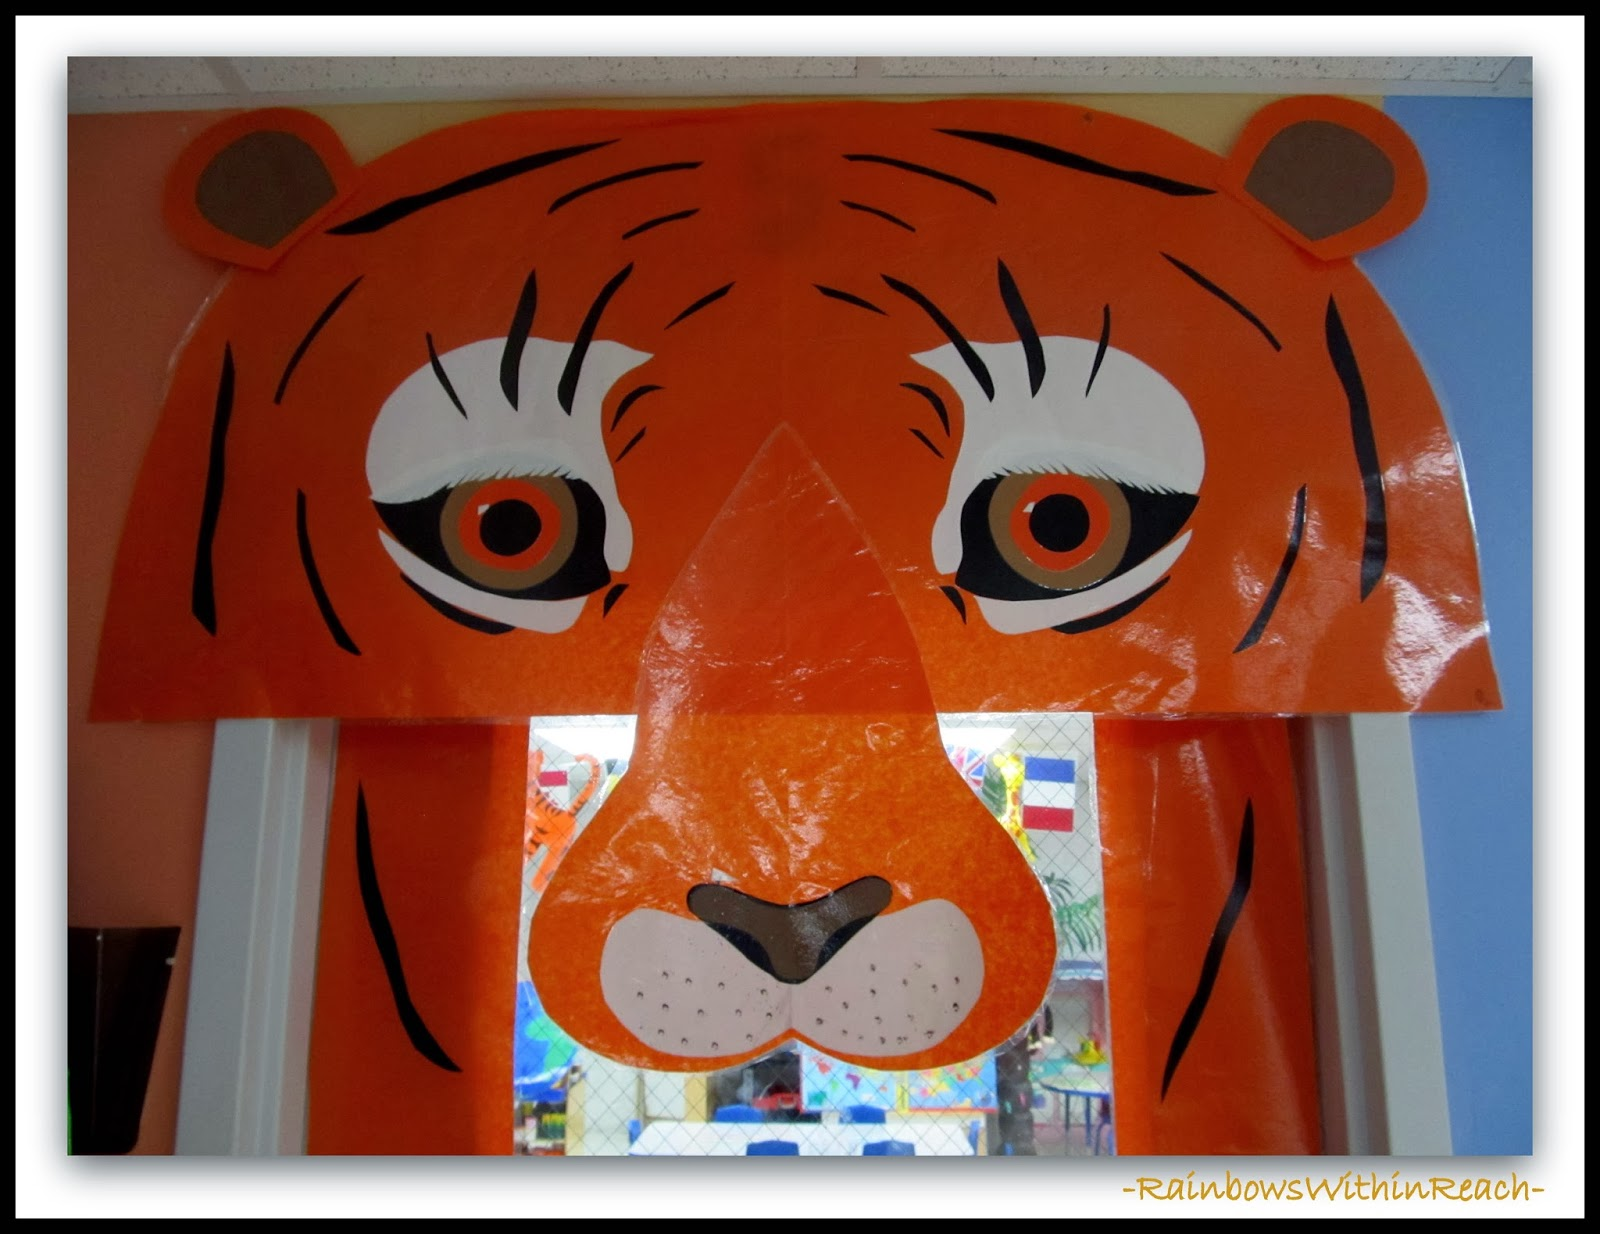 Decorated Classroom Door with Tiger Theme (face detail) via RainbowsWithinReach & RainbowsWithinReach: Jungle Animals as Door Decorations in Preschool